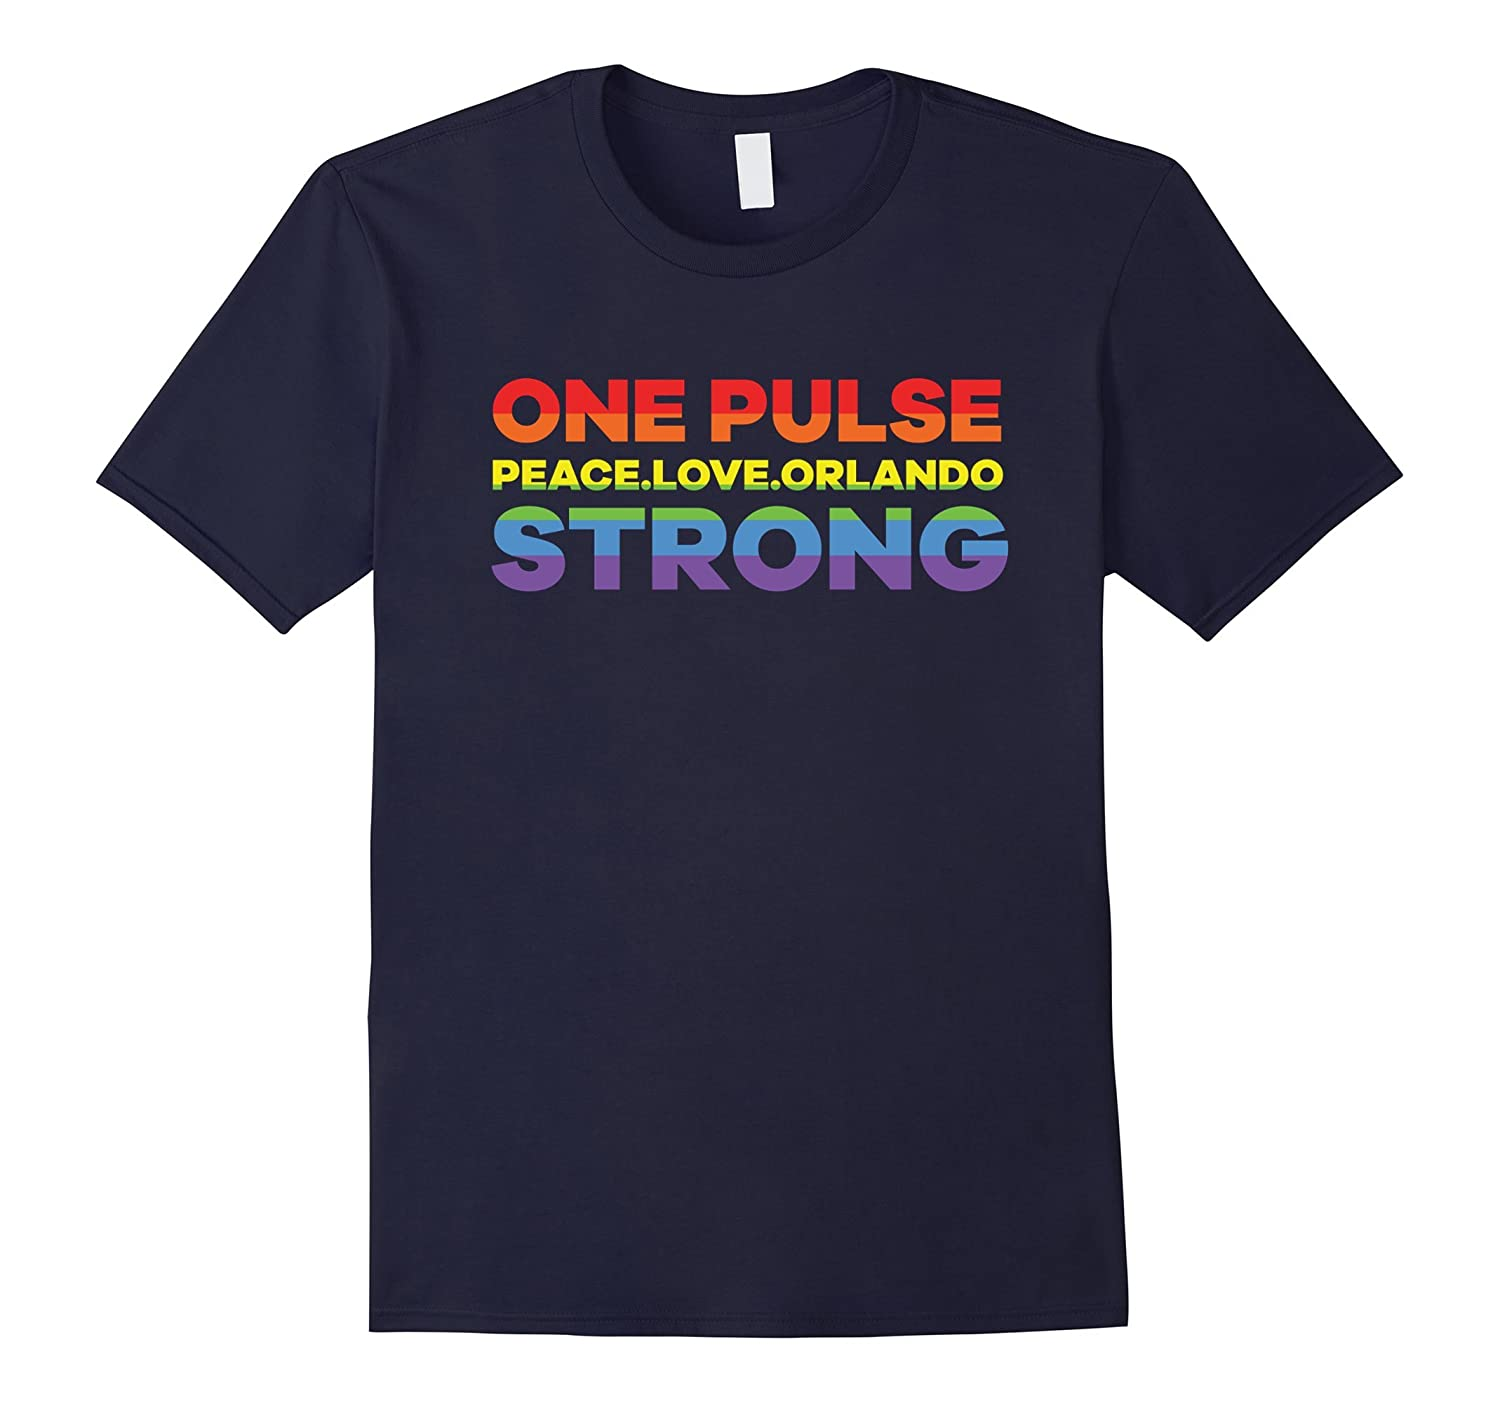 One Pulse peace.love.orlando Strong Gay Lesbian T Shirt-BN